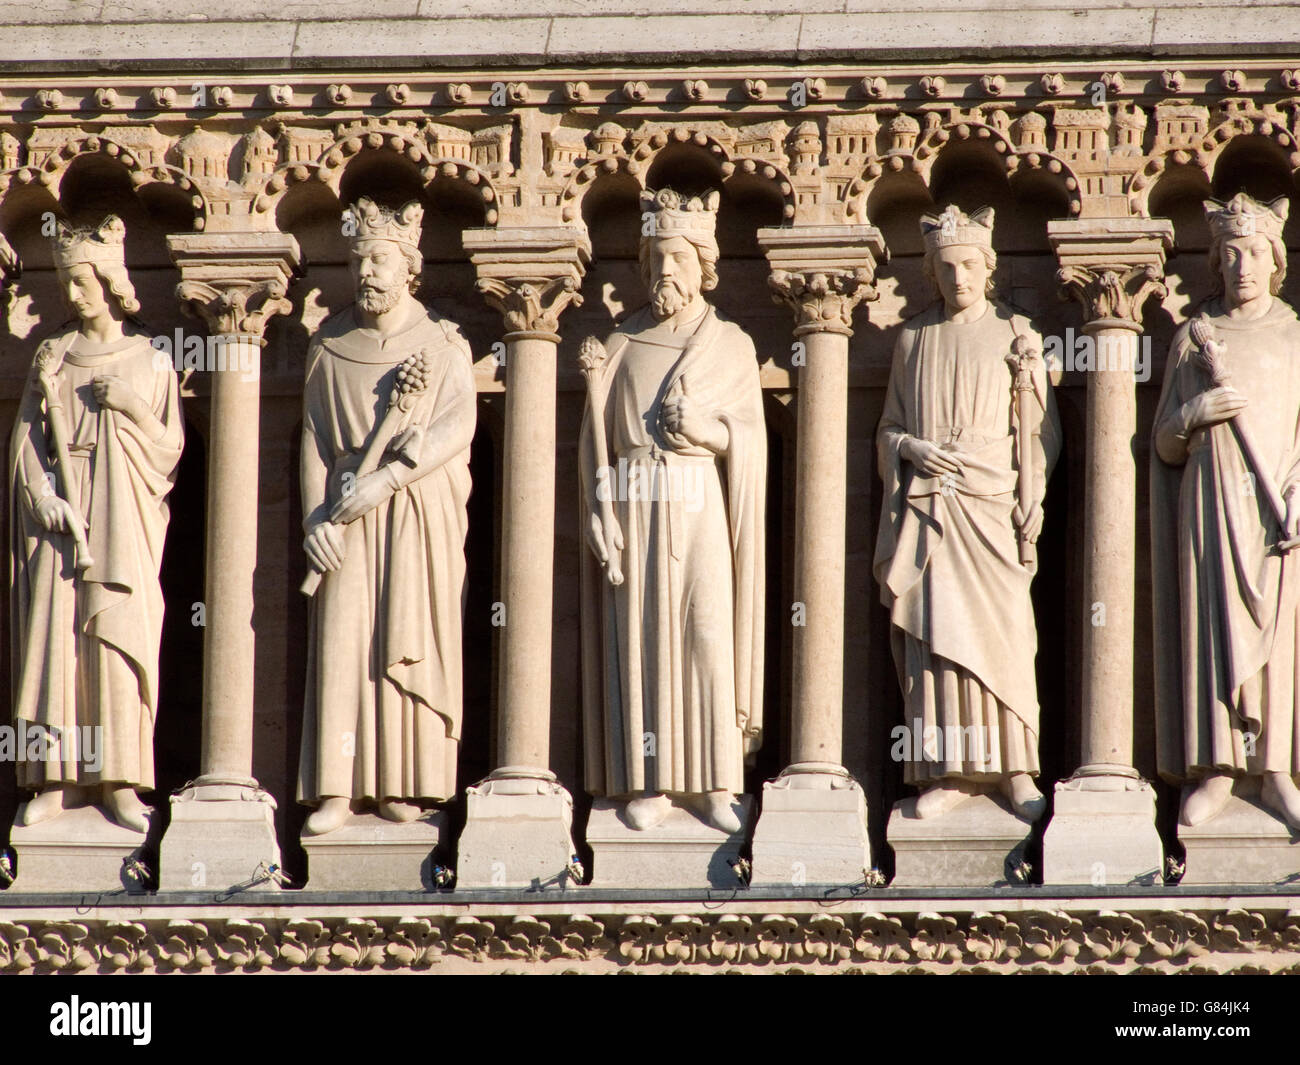 Statues along façade of Notre Dame cathedral, Paris, France - Stock Image